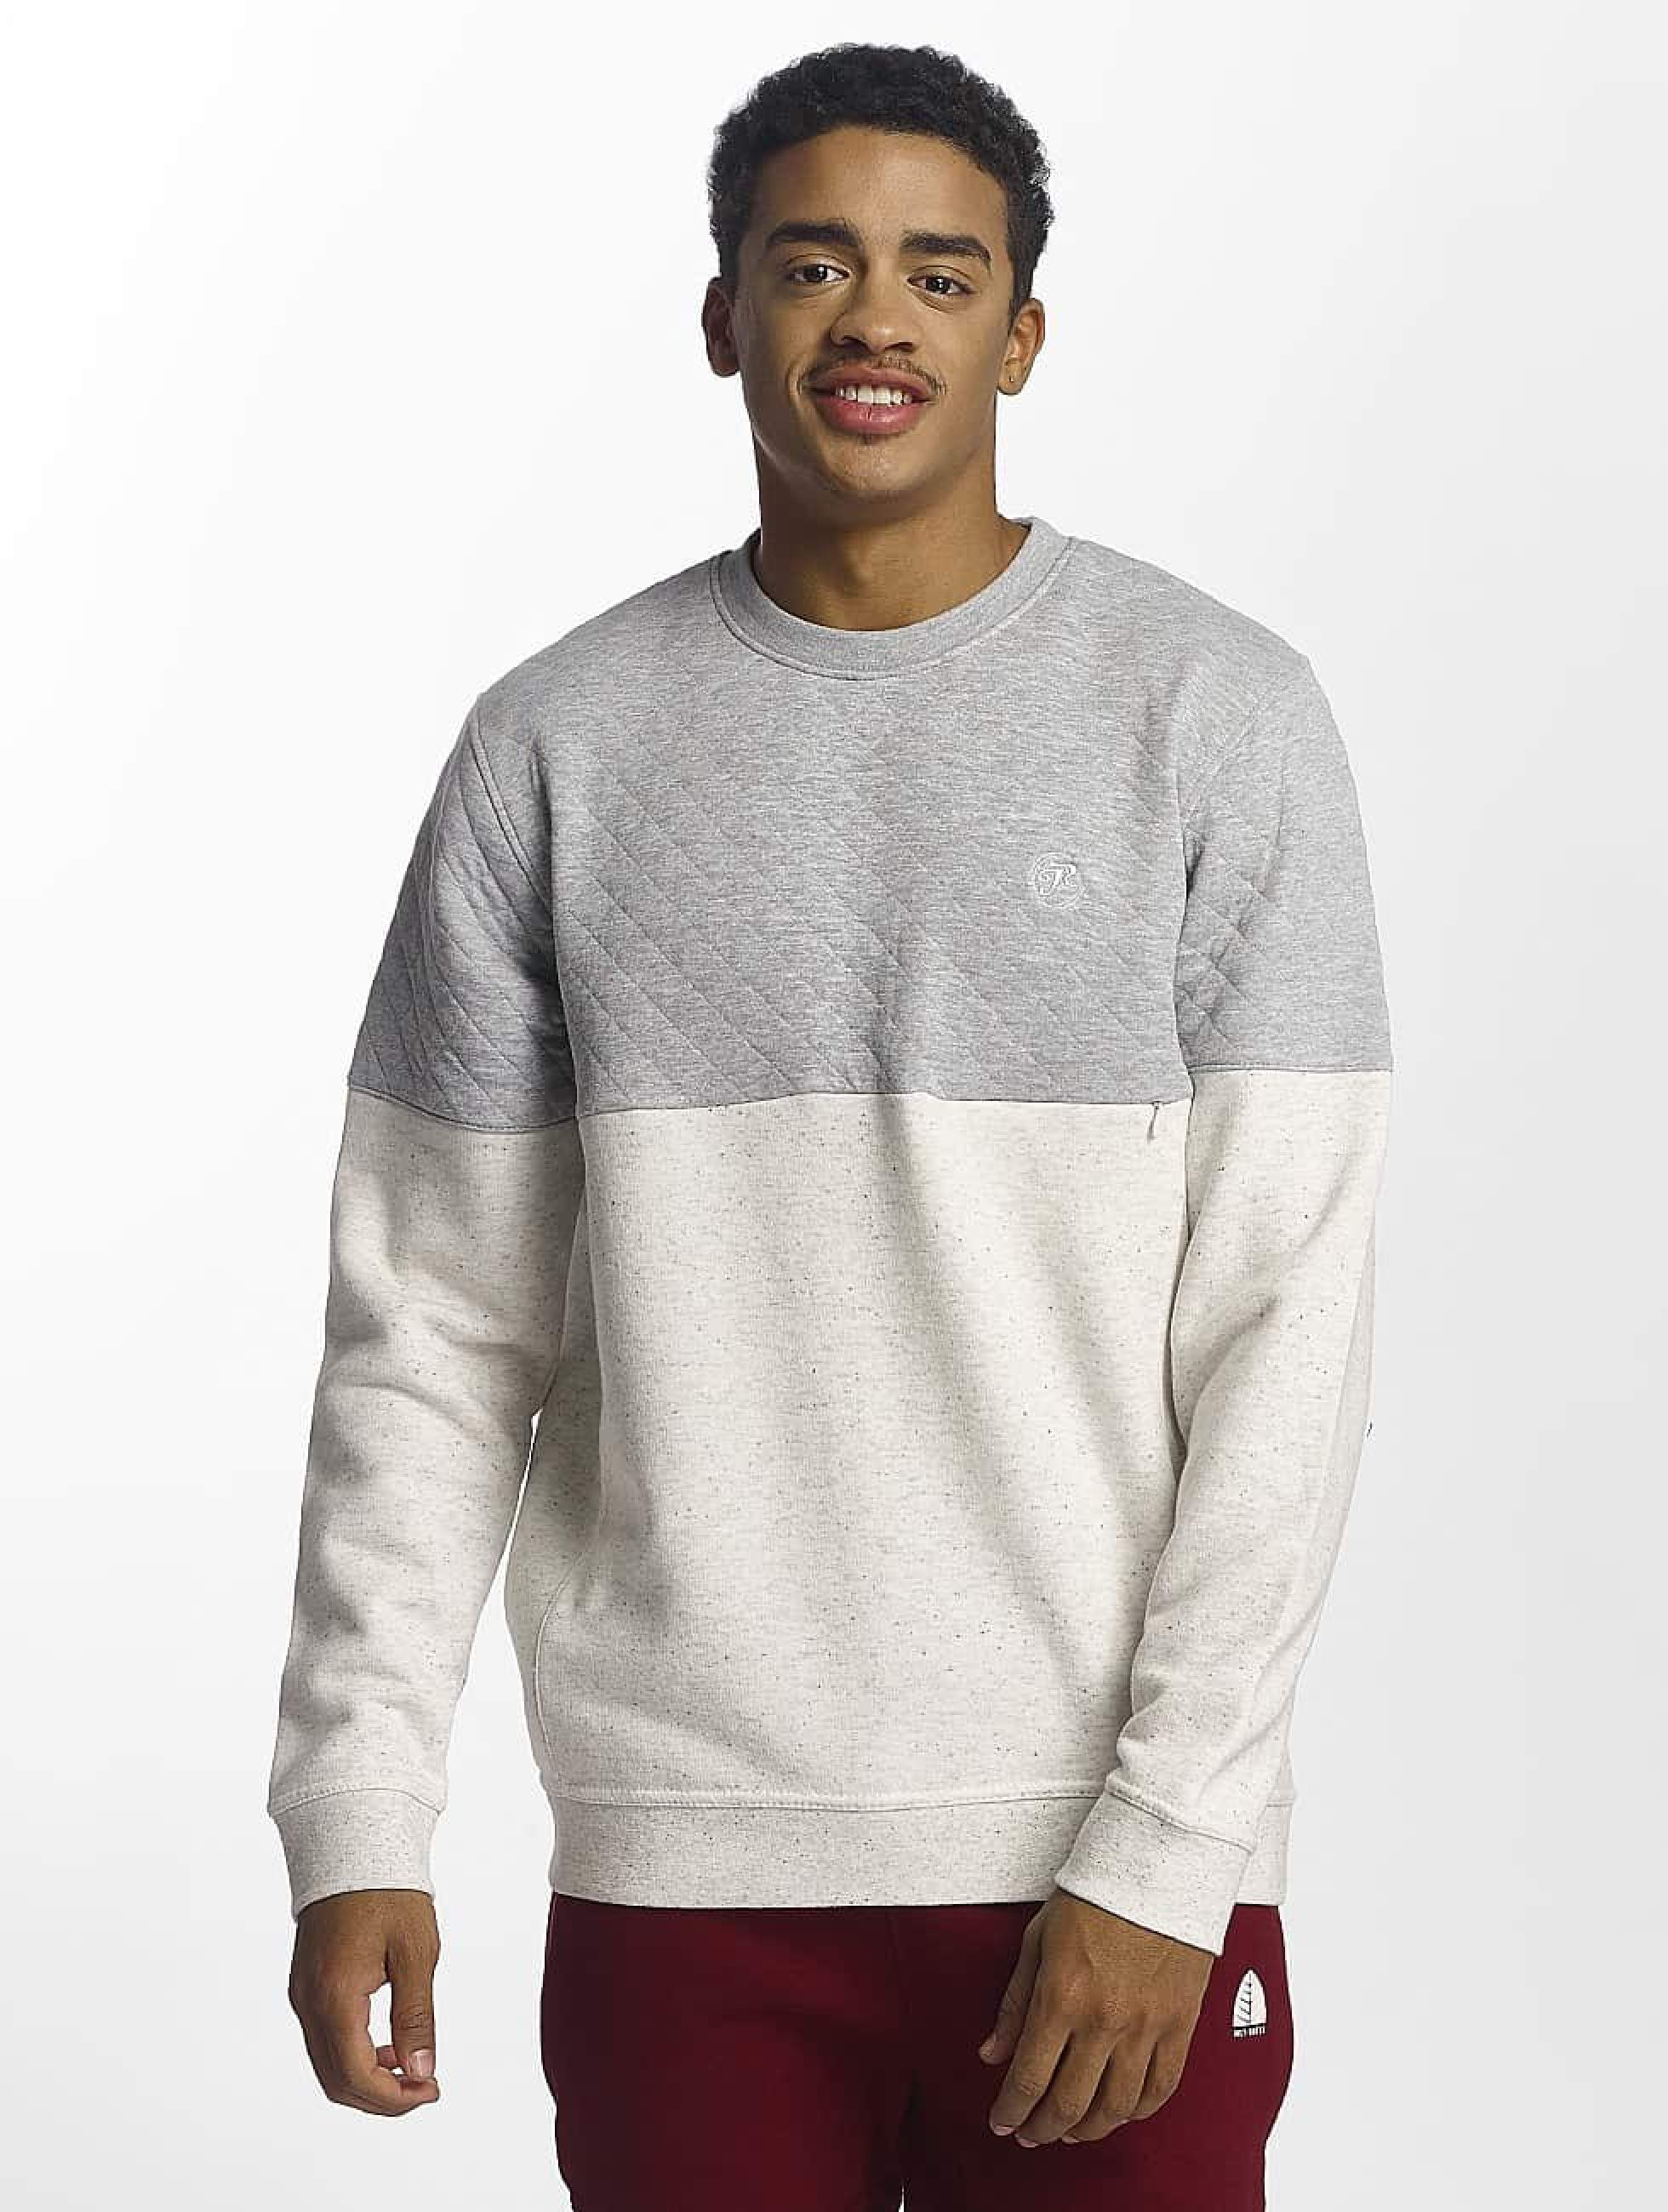 Just Rhyse / Jumper Etolin in white S